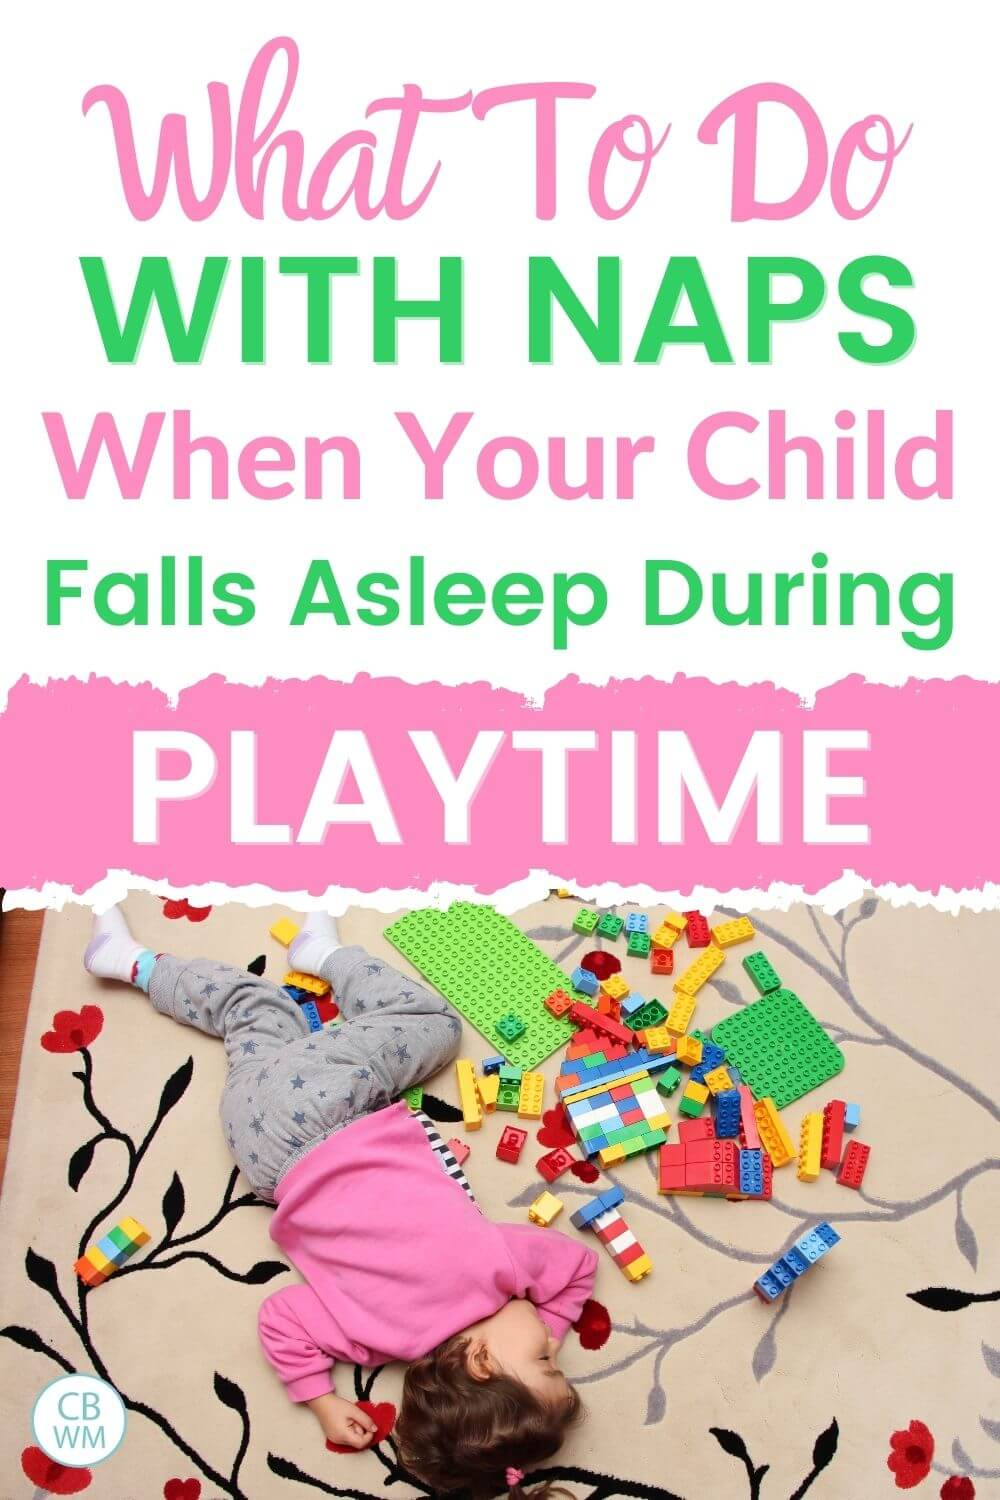 What to do with naps when your child falls asleep during playtime